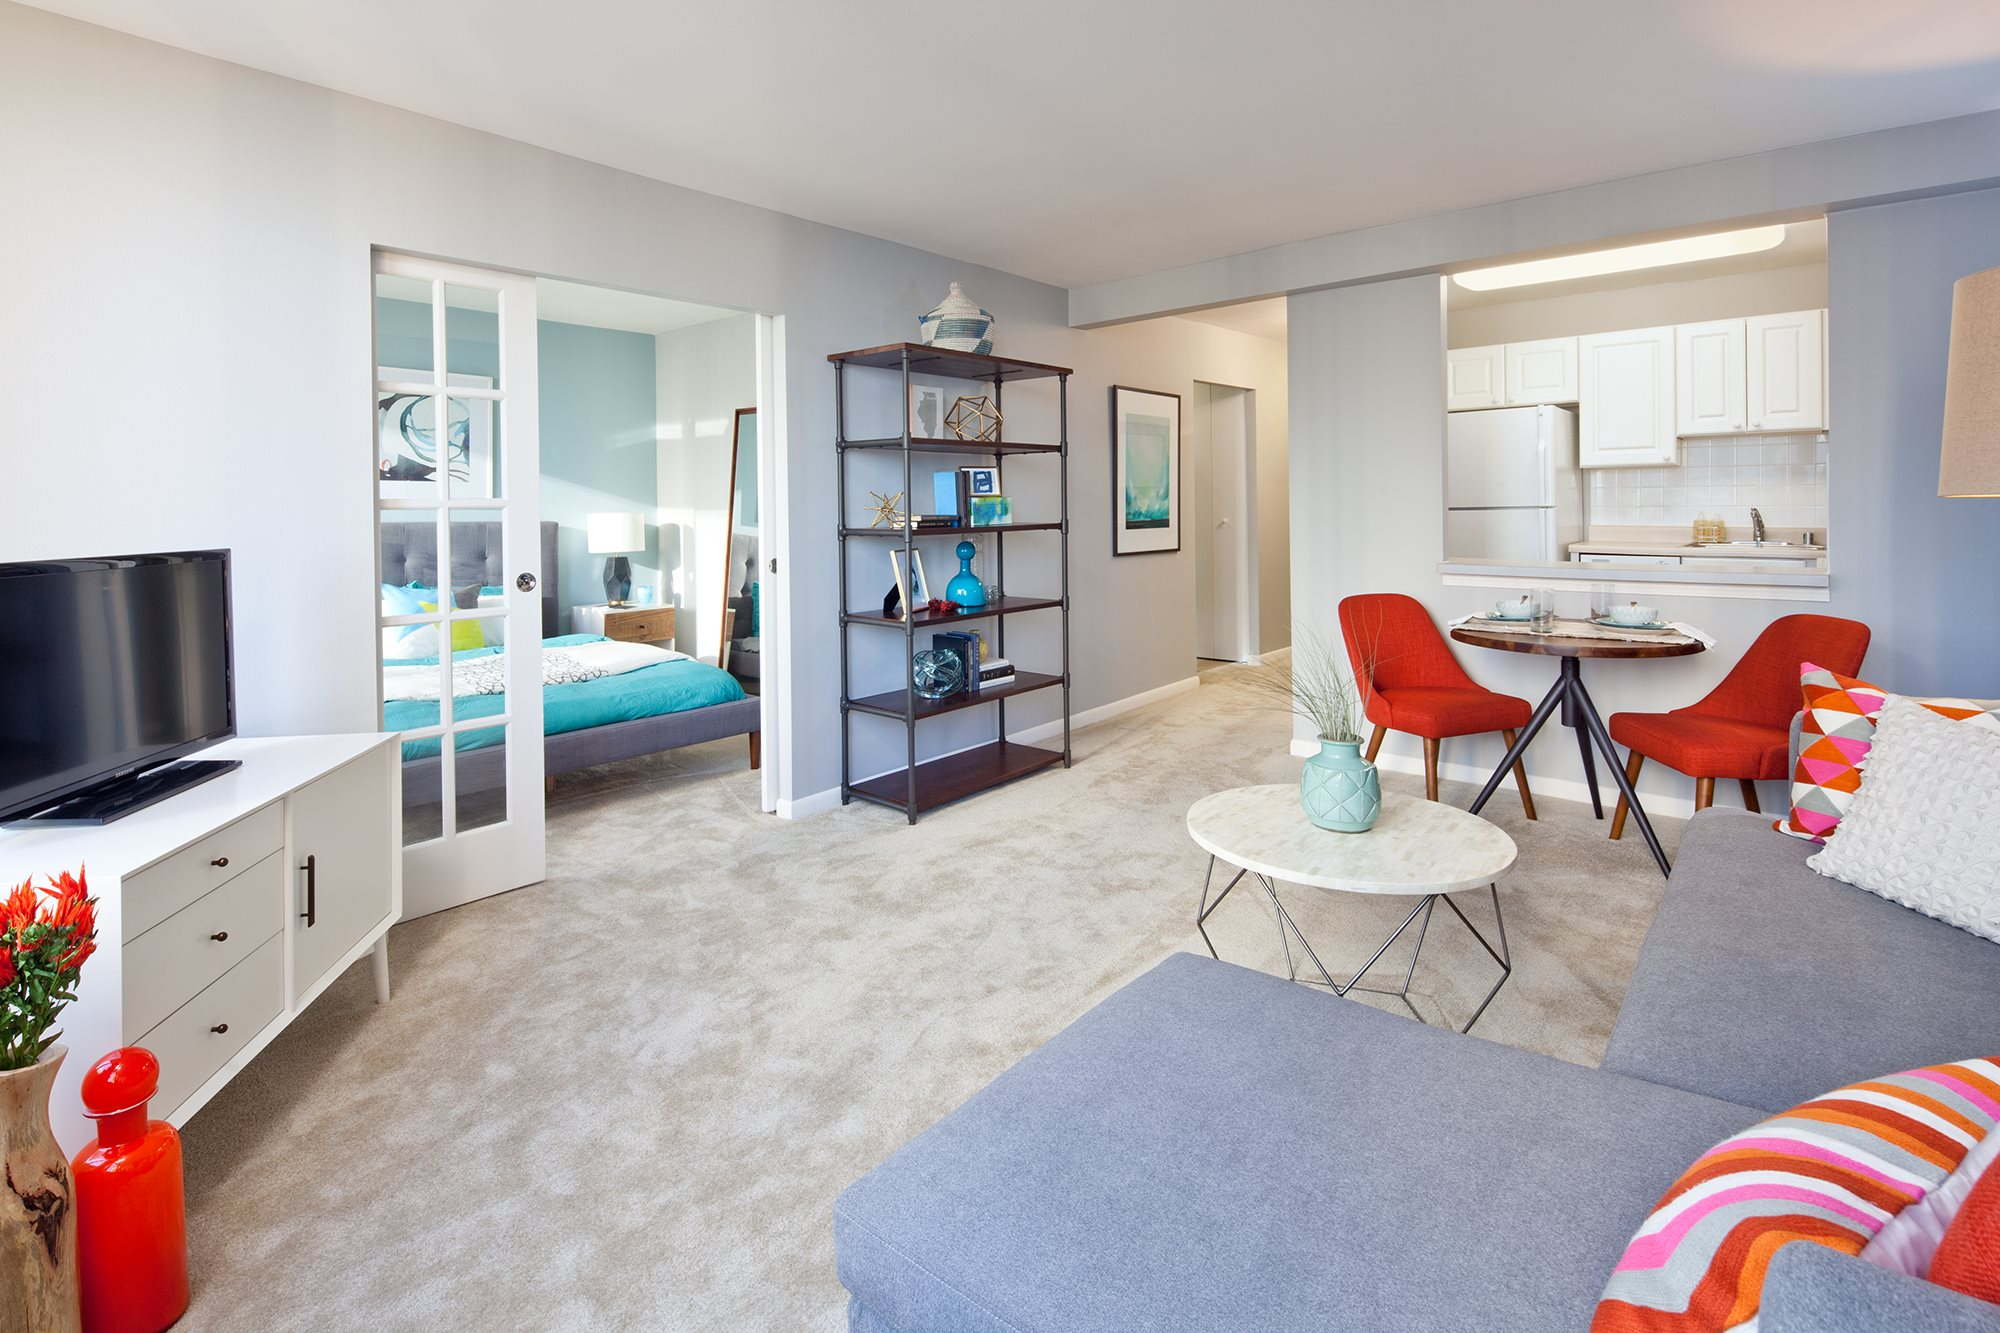 Spacious one bedroom floor plans in Streeterville Chicago at McClurg Court.